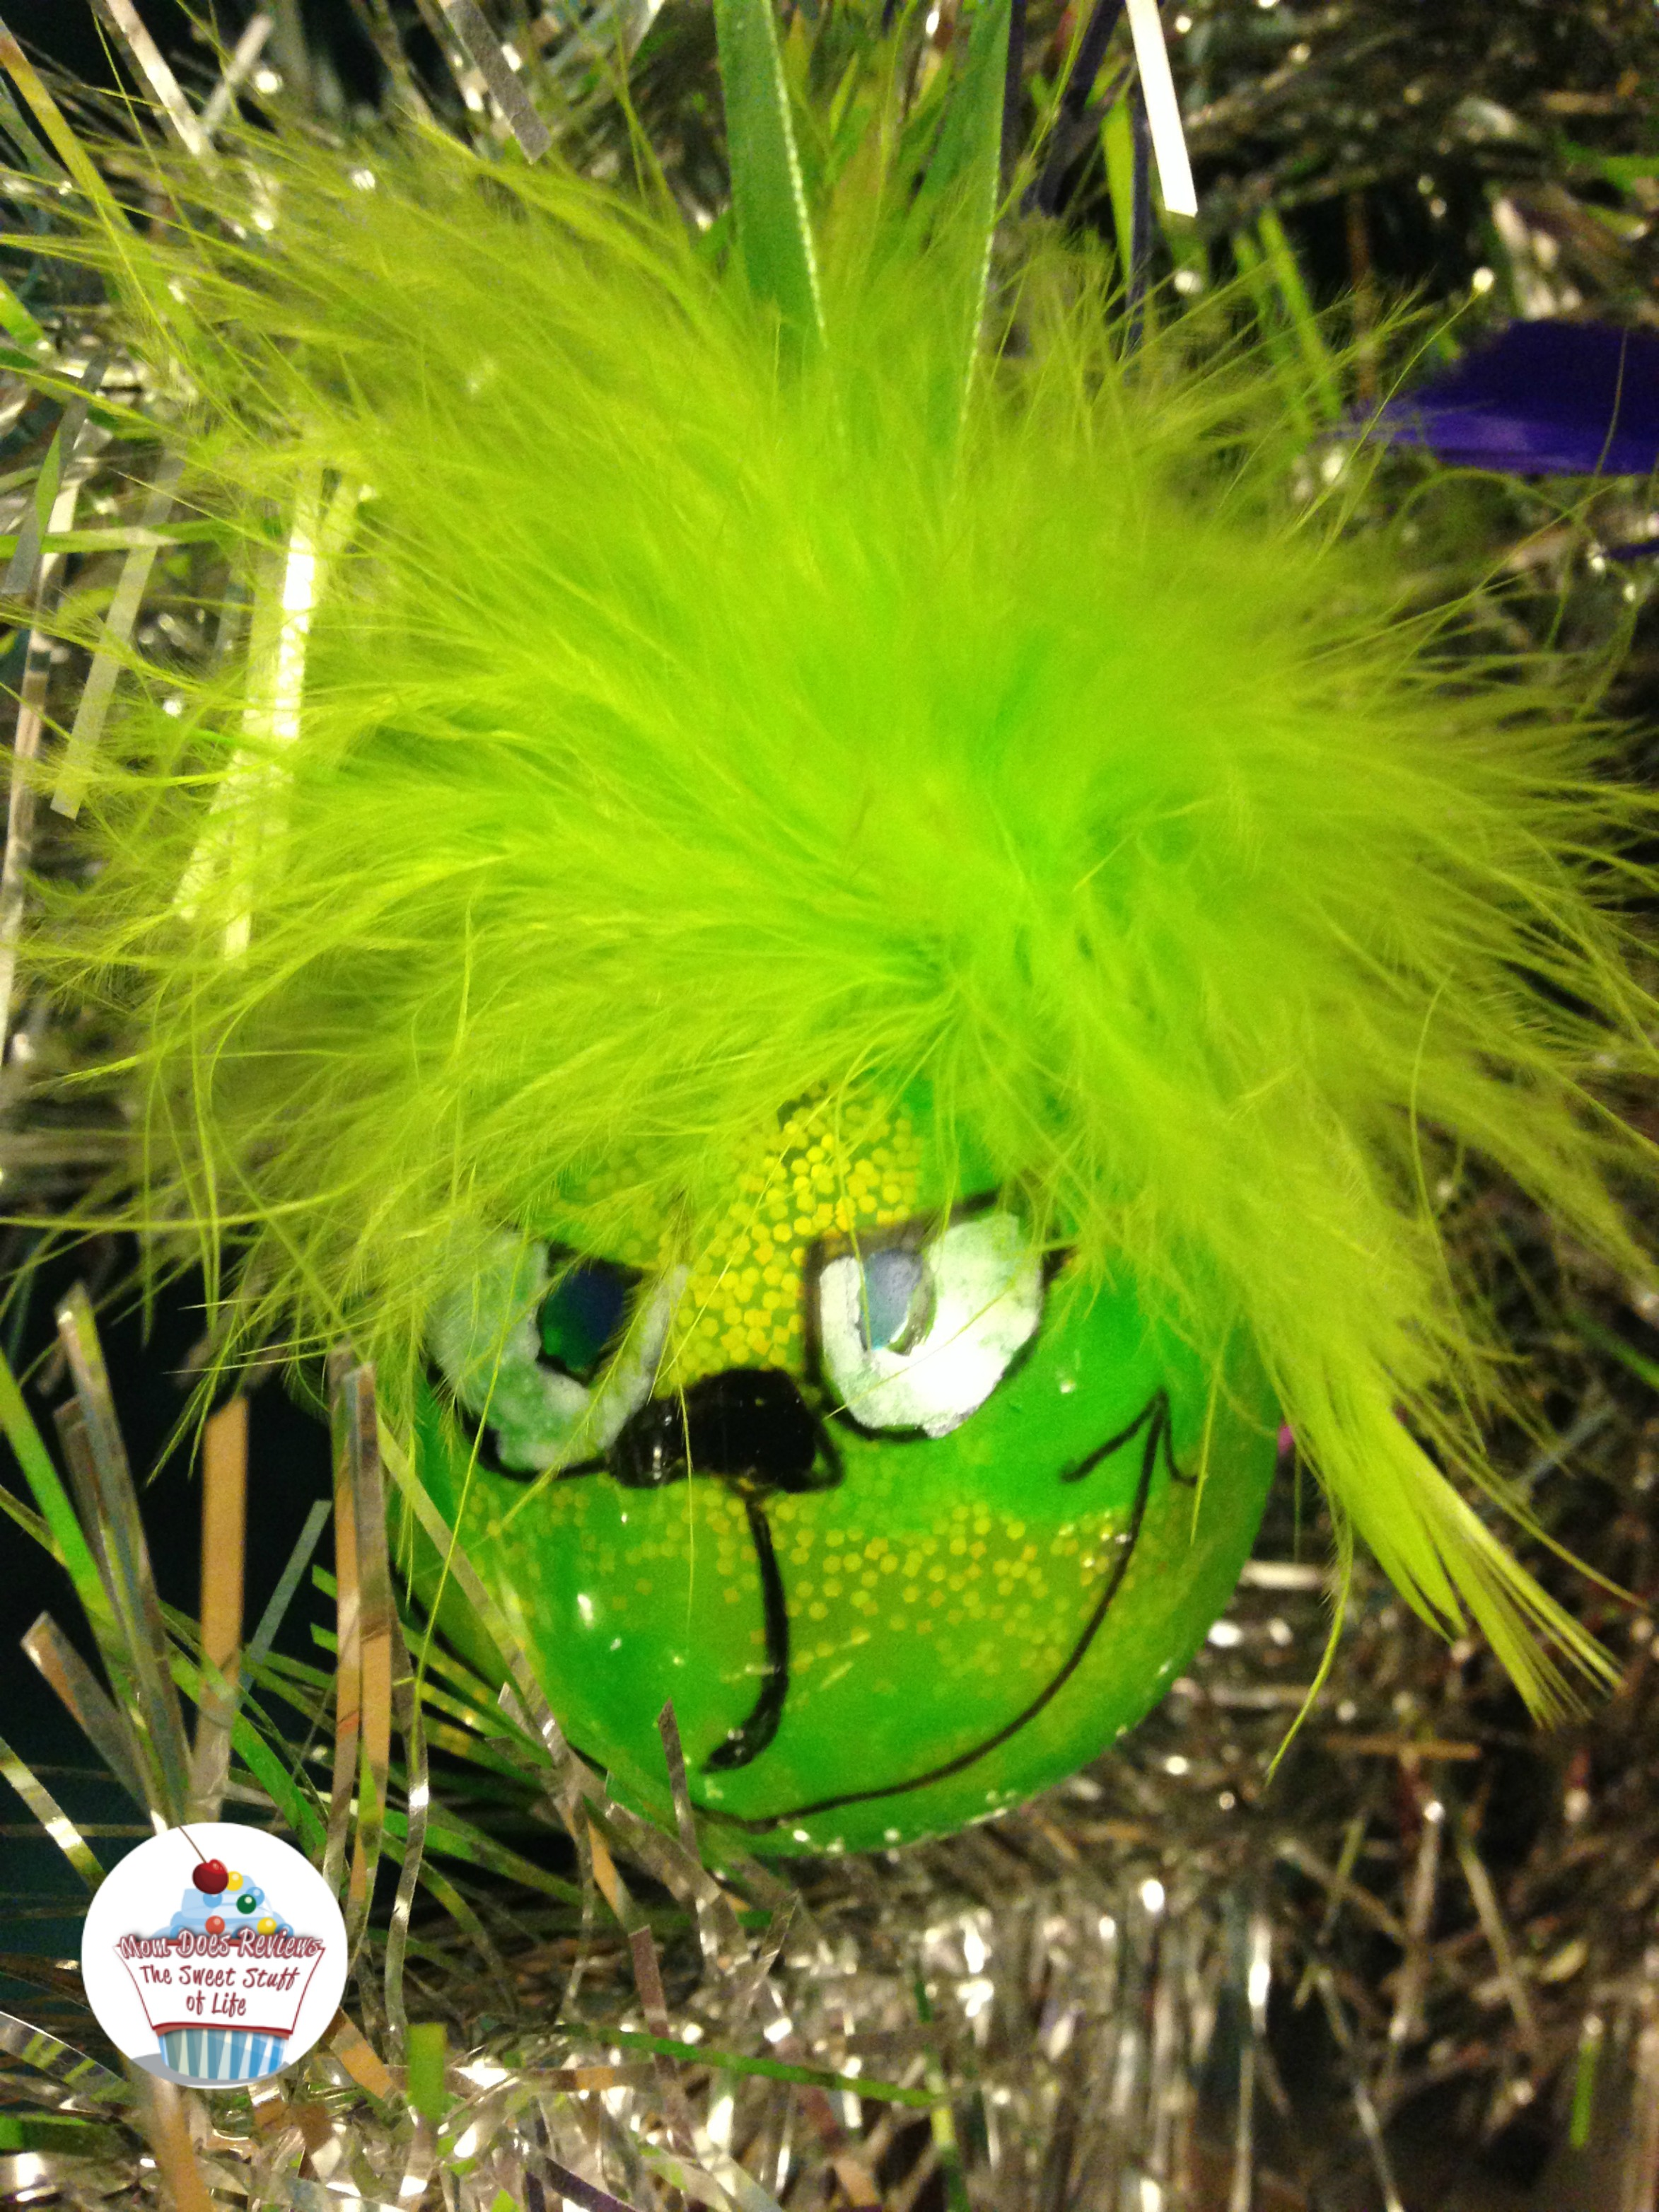 Grinch-Inspired Crafts - DIY Grinch Ornaments